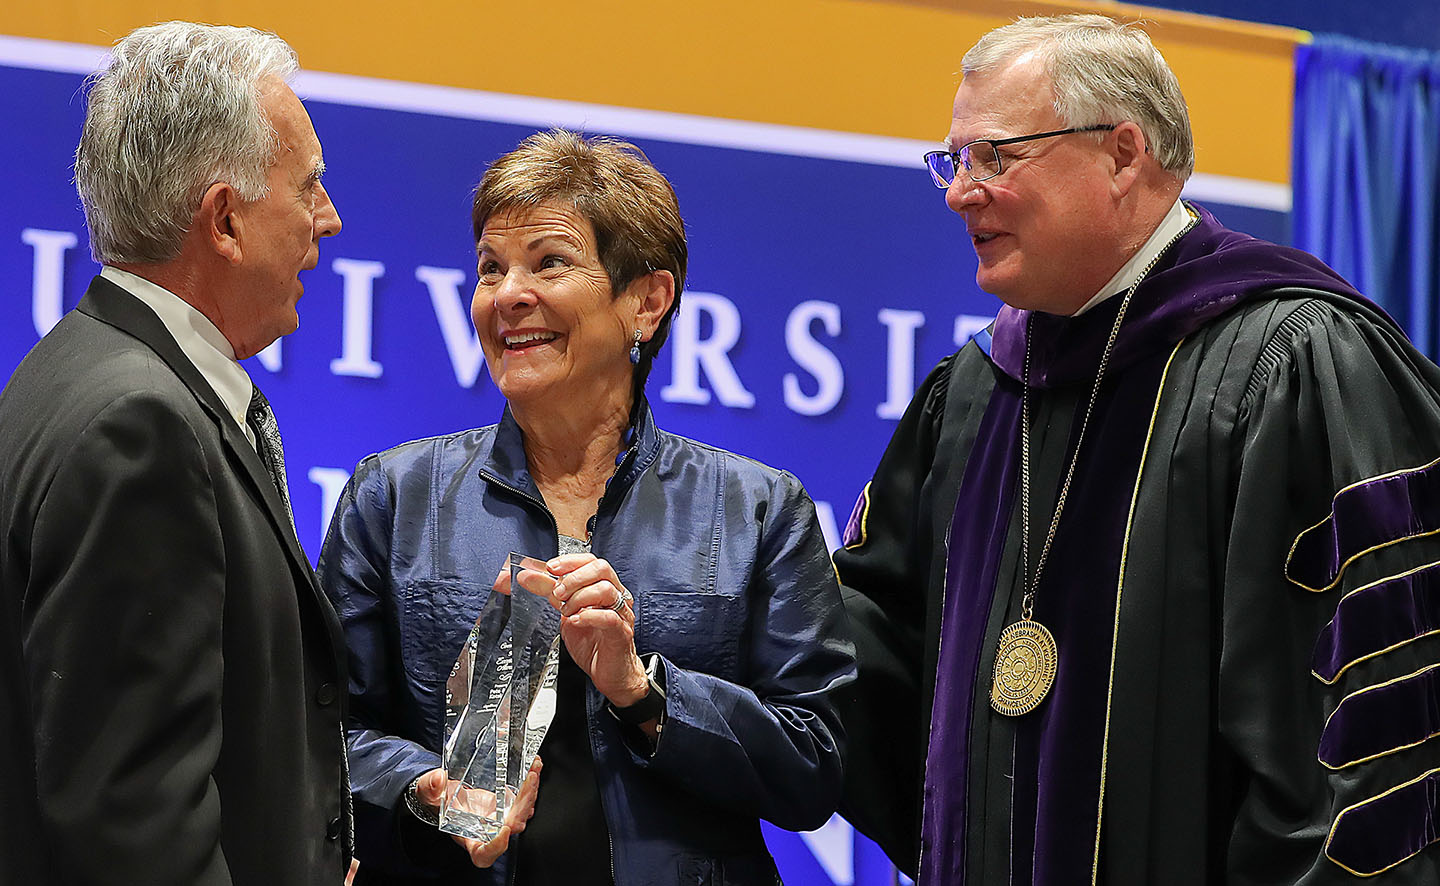 UNK Chancellor Doug Kristensen, right, presents the Ron and Carol Cope Cornerstone of Excellence Award to Pete and Jane Kotsiopulos during Friday's spring commencement ceremony at the Health and Sports Center. (Photos by Erika Pritchard, UNK Communications)